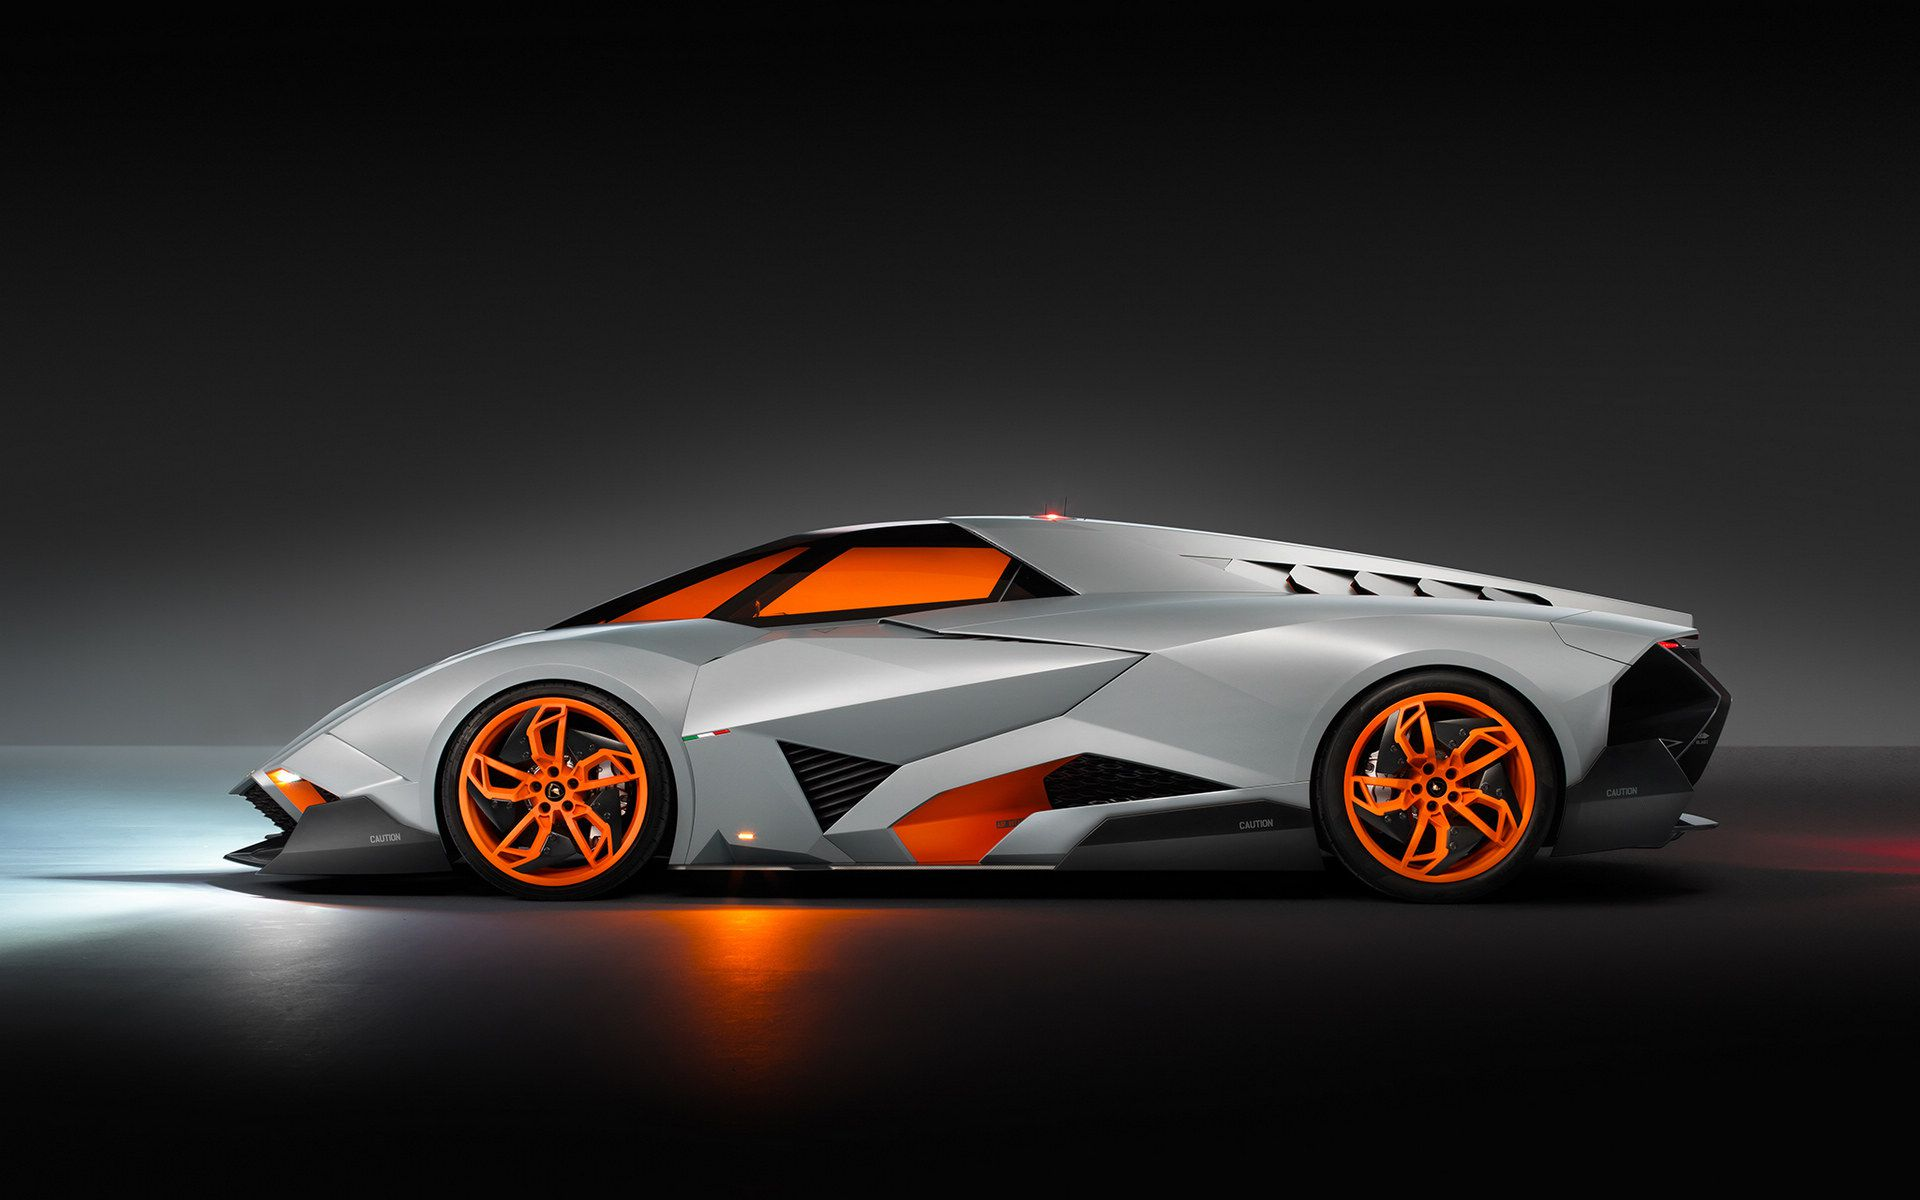 Download Lamborghini Egoista Supercar desktop backgrounds - HD Wallpaper Download